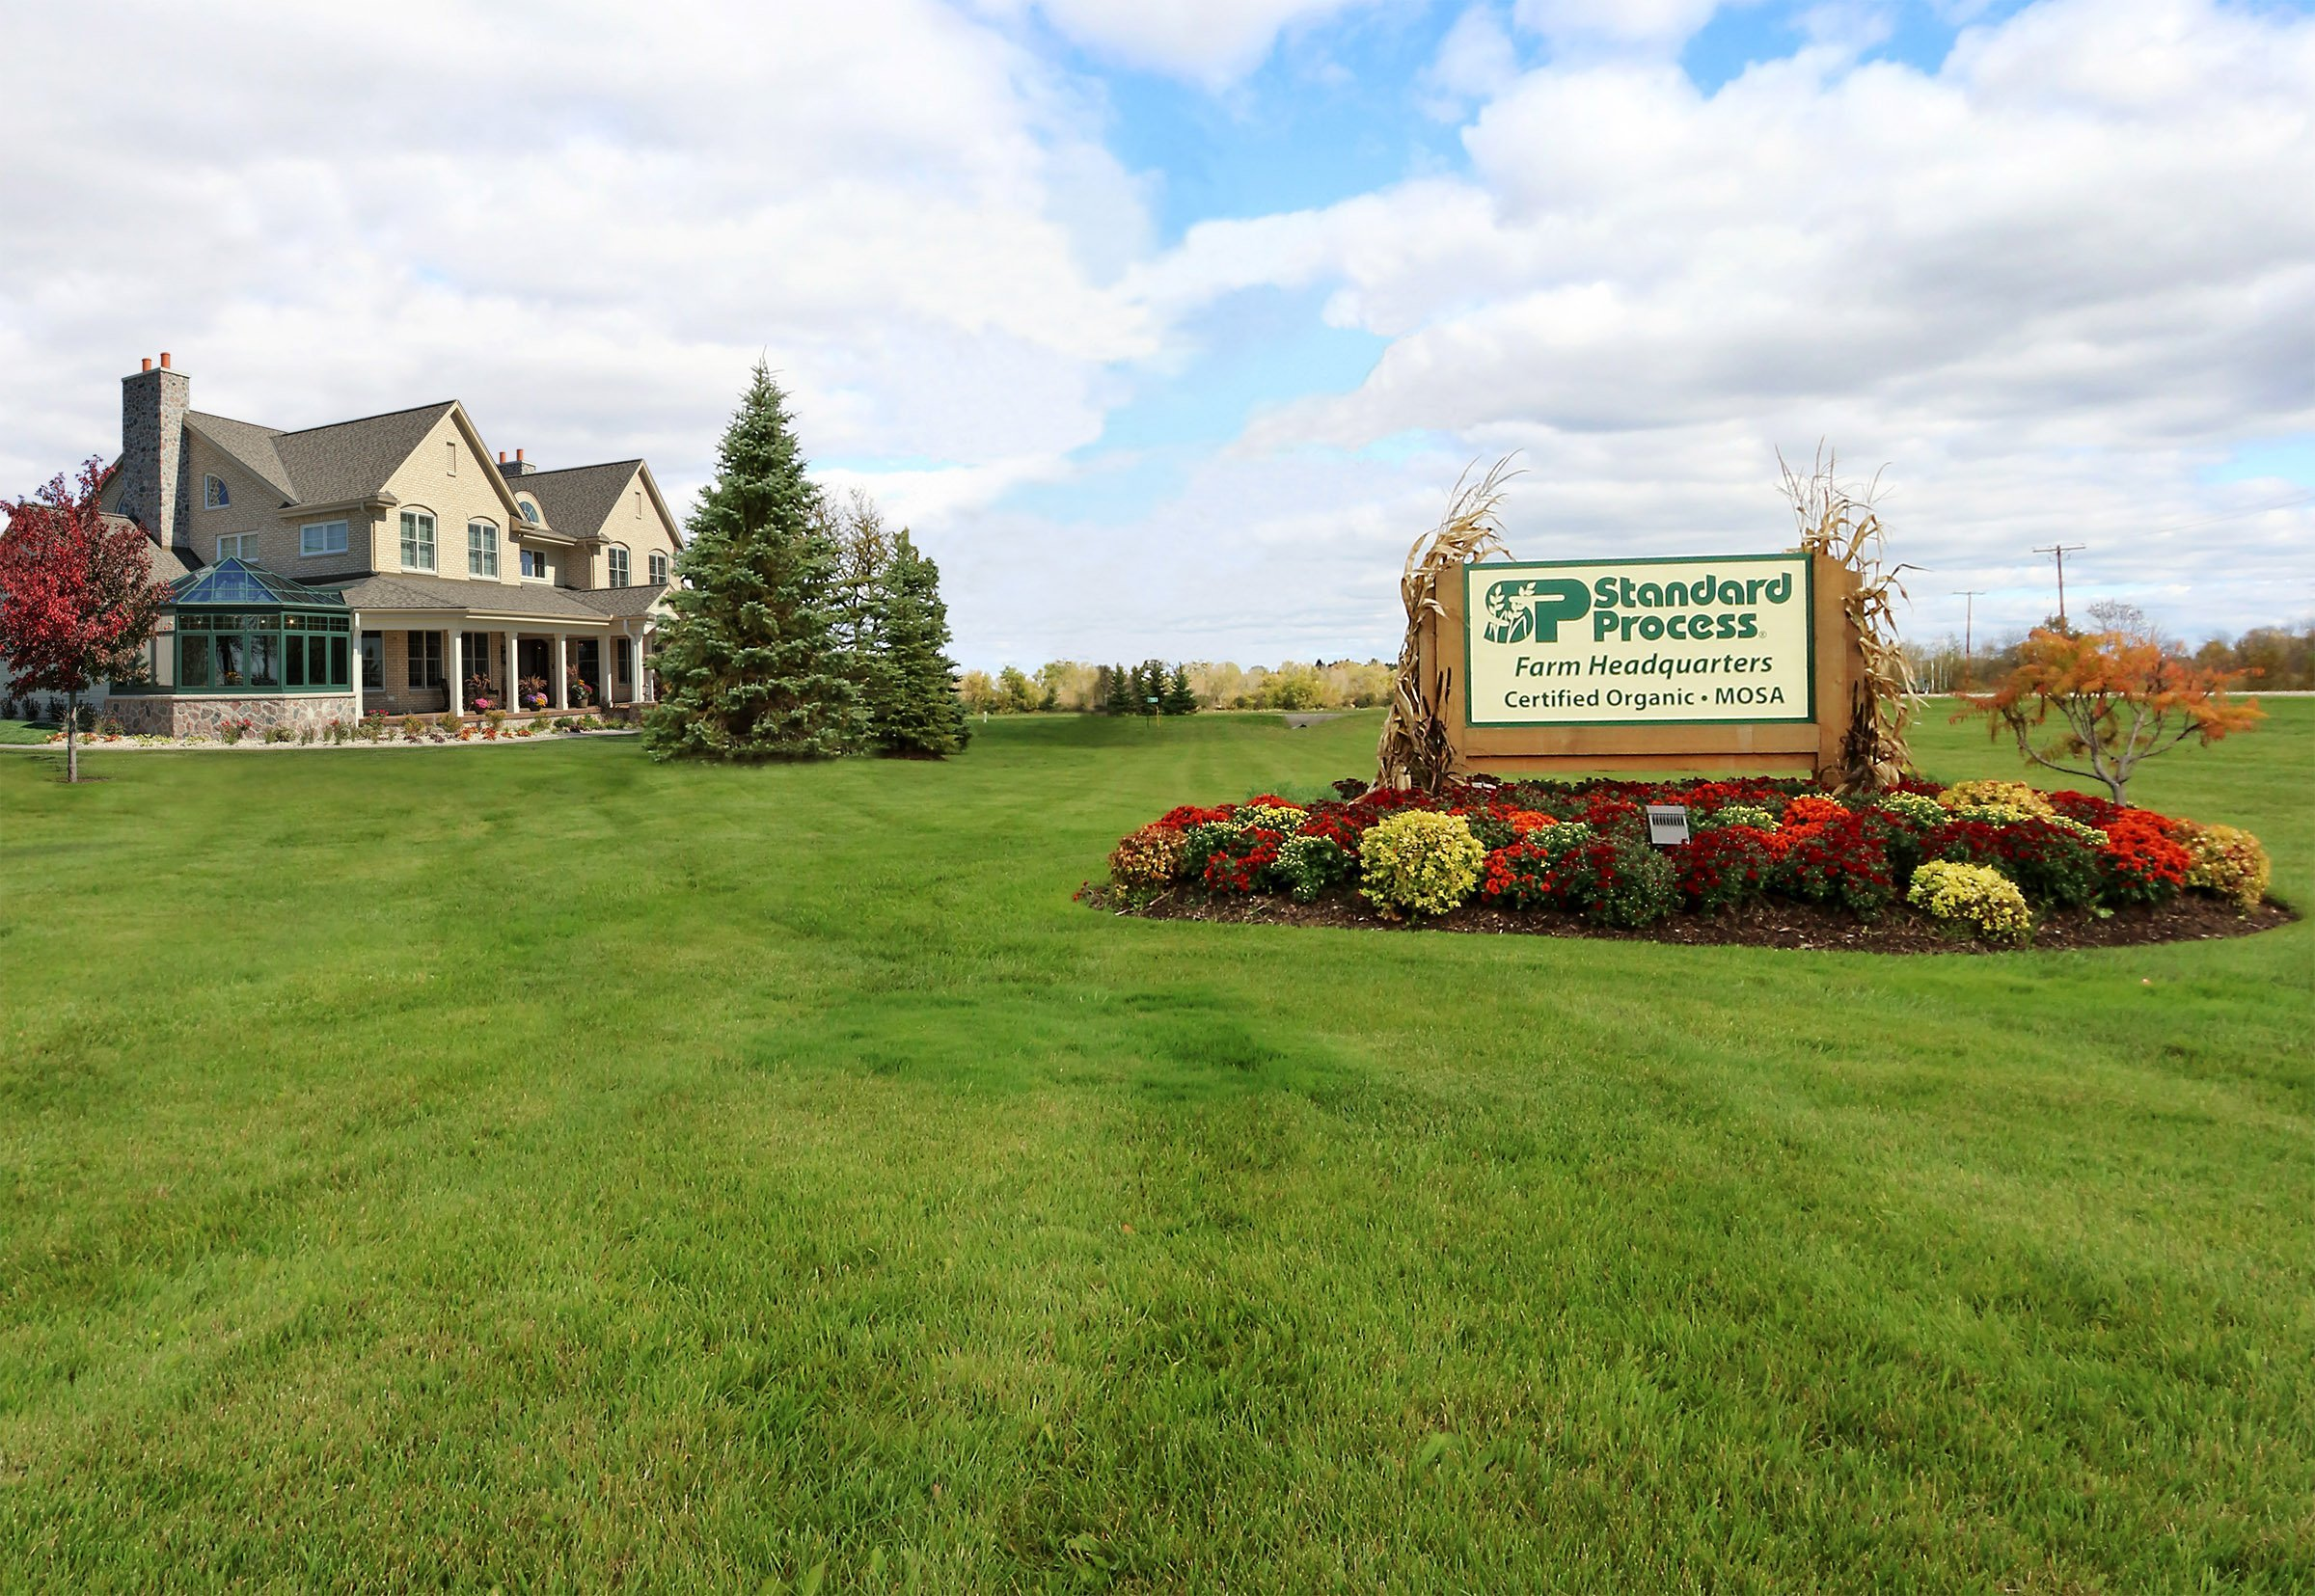 Standard Process - Cellular Vitality - Vitamin B1, B2, B6, Folate, B12, Biotin, CoQ10, Supports Healthy Cellular Processes and Provides Antioxidant Activity, Gluten Free and Vegetarian - 90 Capsules by Standard Process (Image #7)